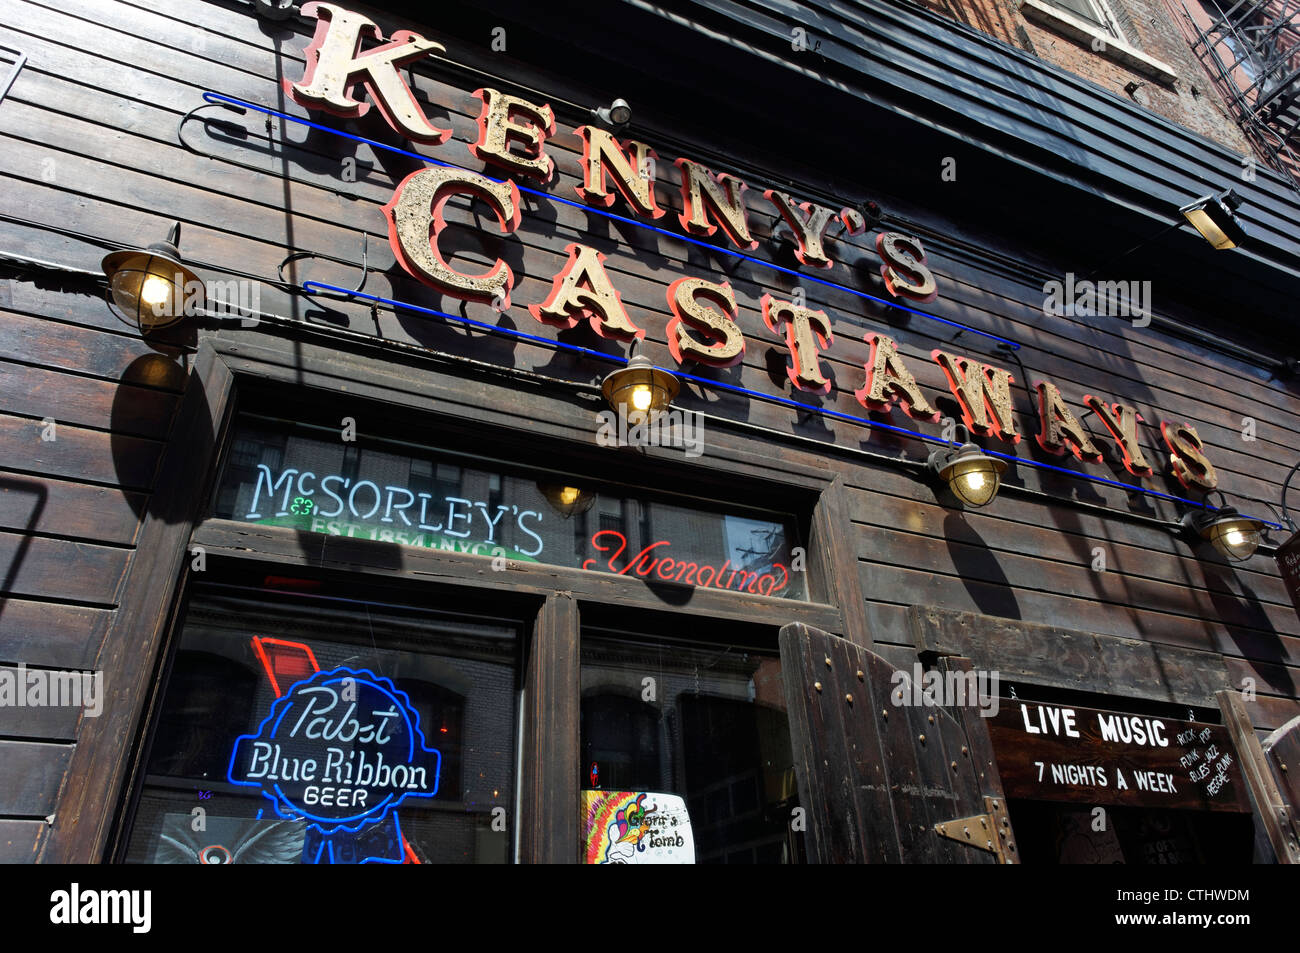 Kenny´s Casteaway Pub with live music in Greenwich Village, New York, USA, - Stock Image